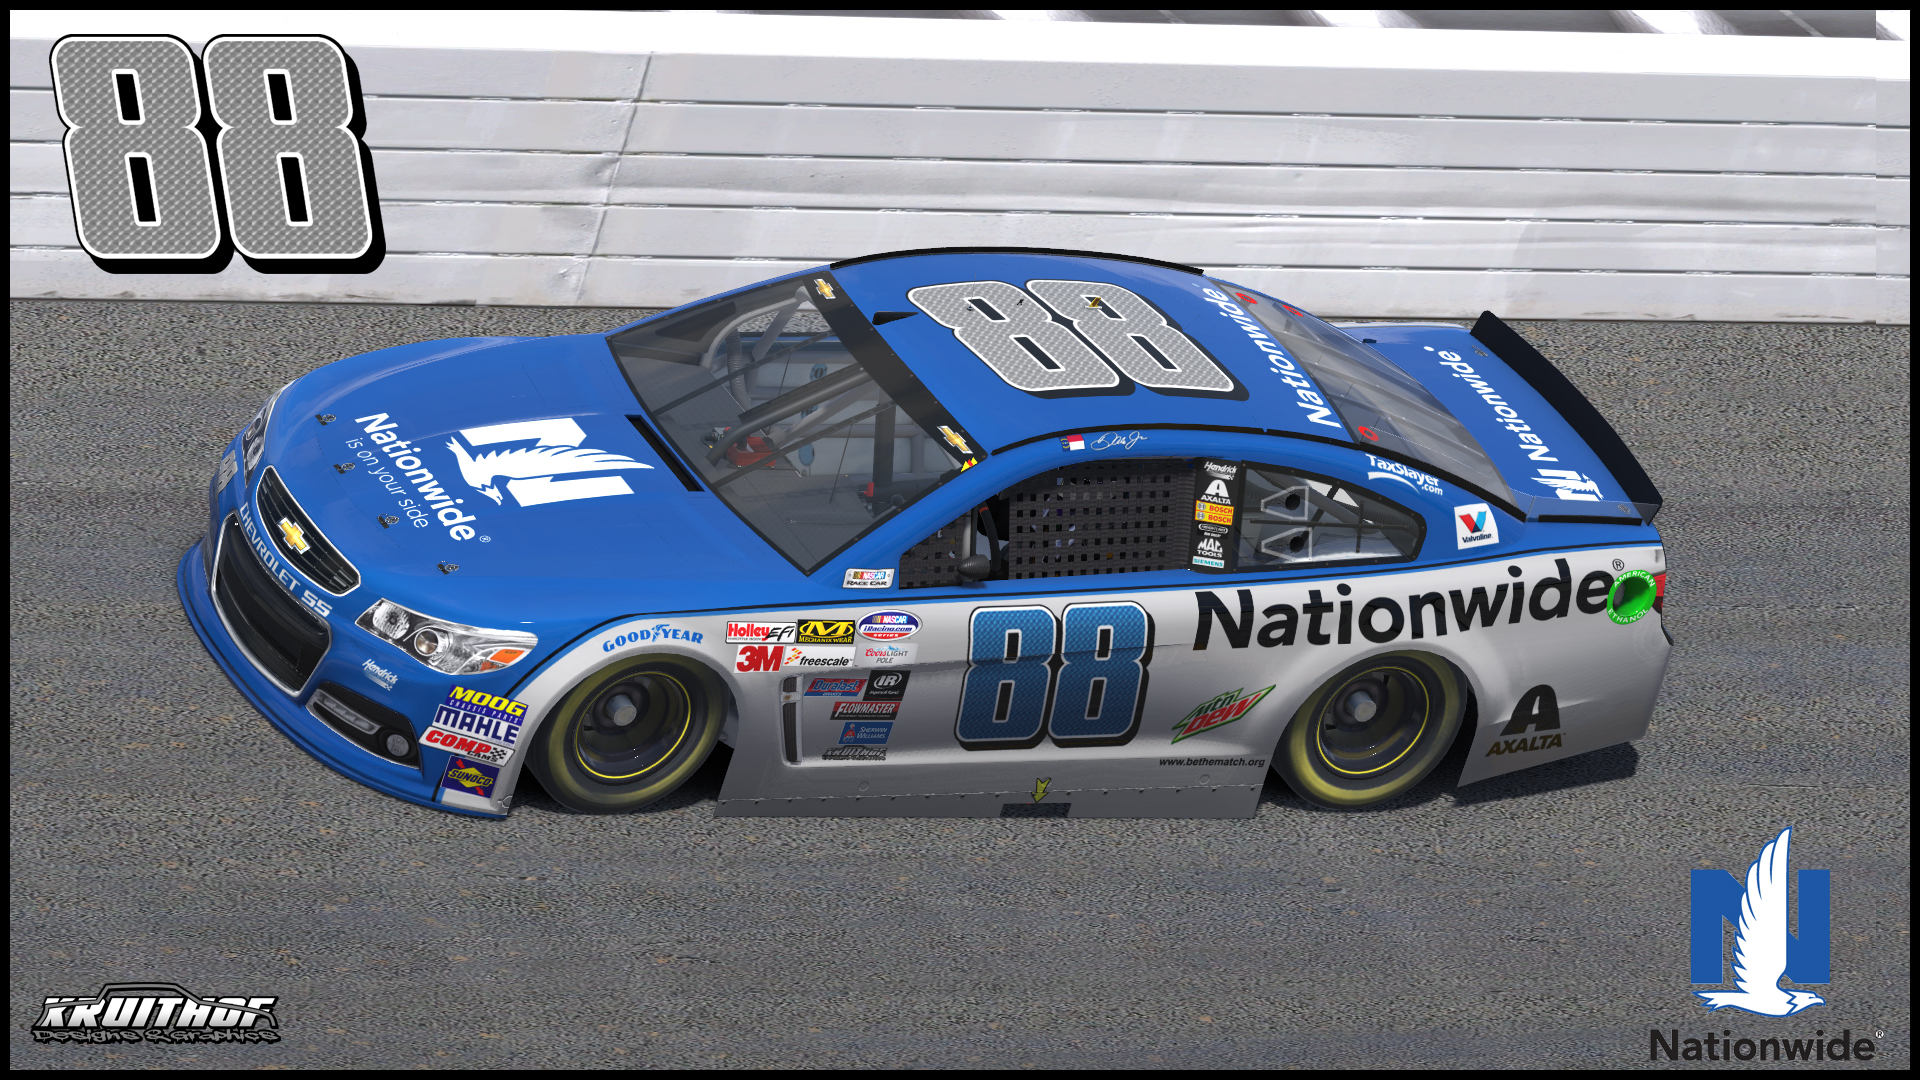 88 Dale Earnhardt Jr Nationwide 2016 by Udo Washeim - Trading Paints